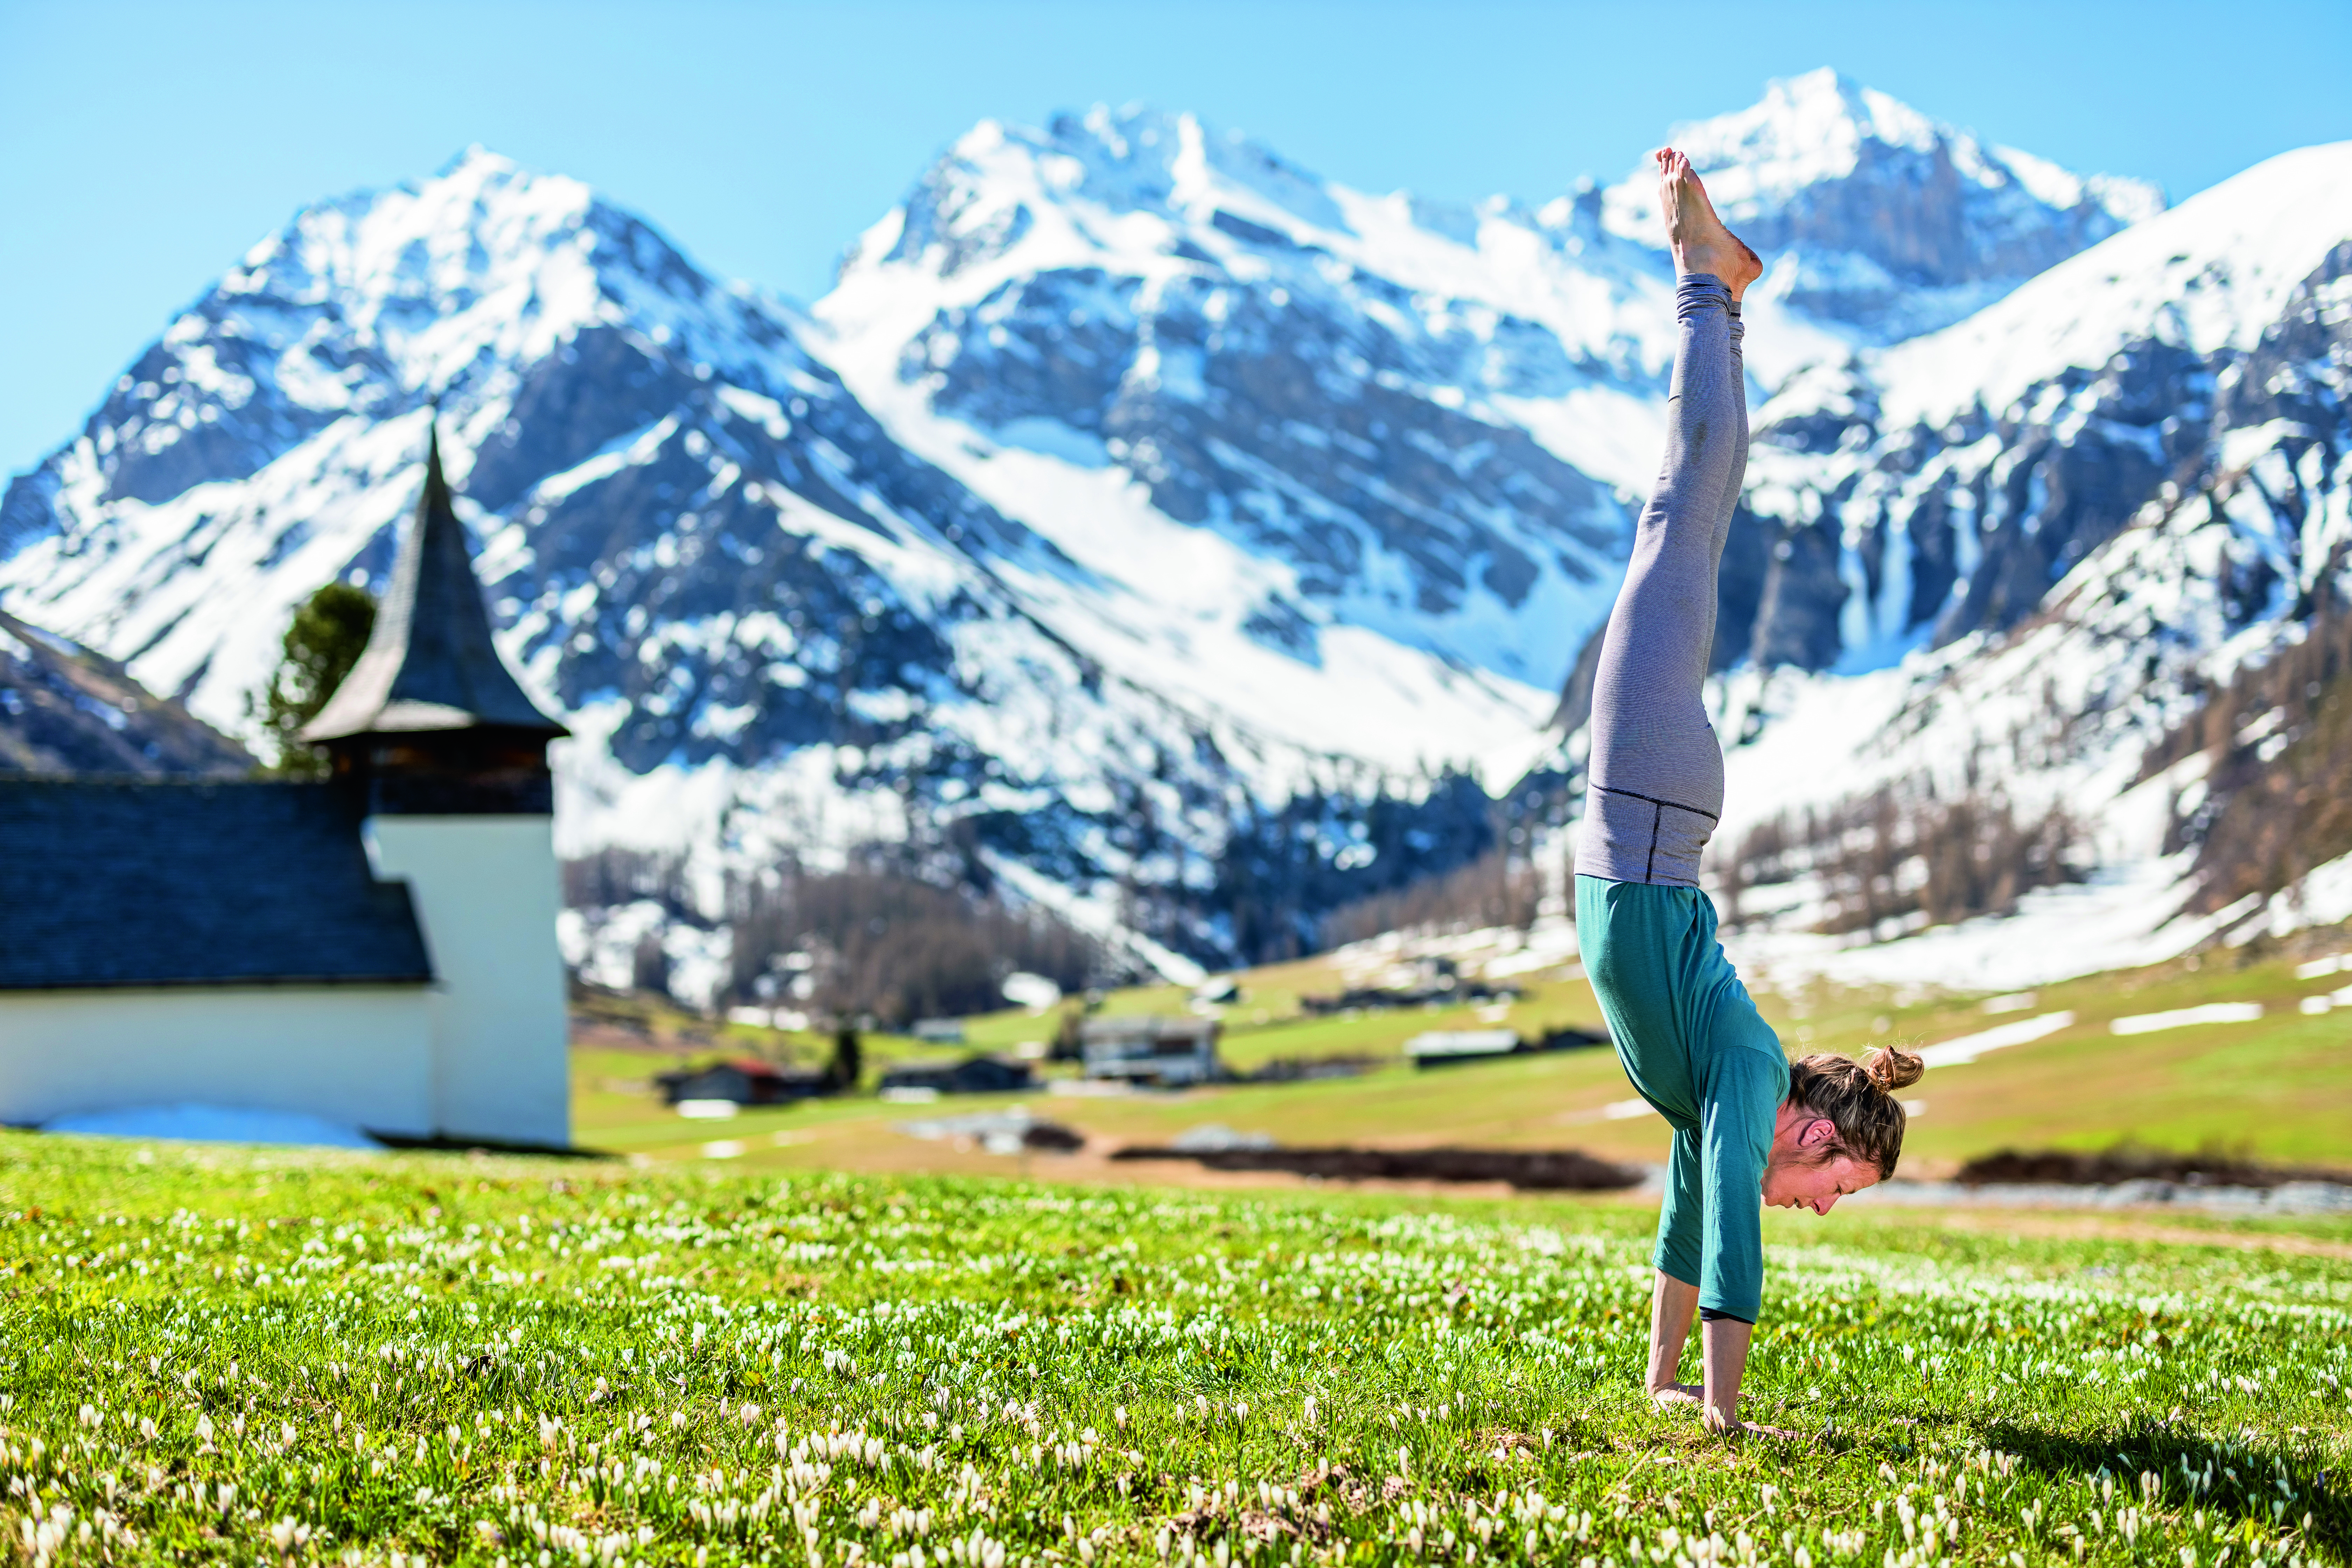 yoga in the alps, mountain yoga, alpine yoga holiday, mountain yoga retreat, luxury yoga holiday